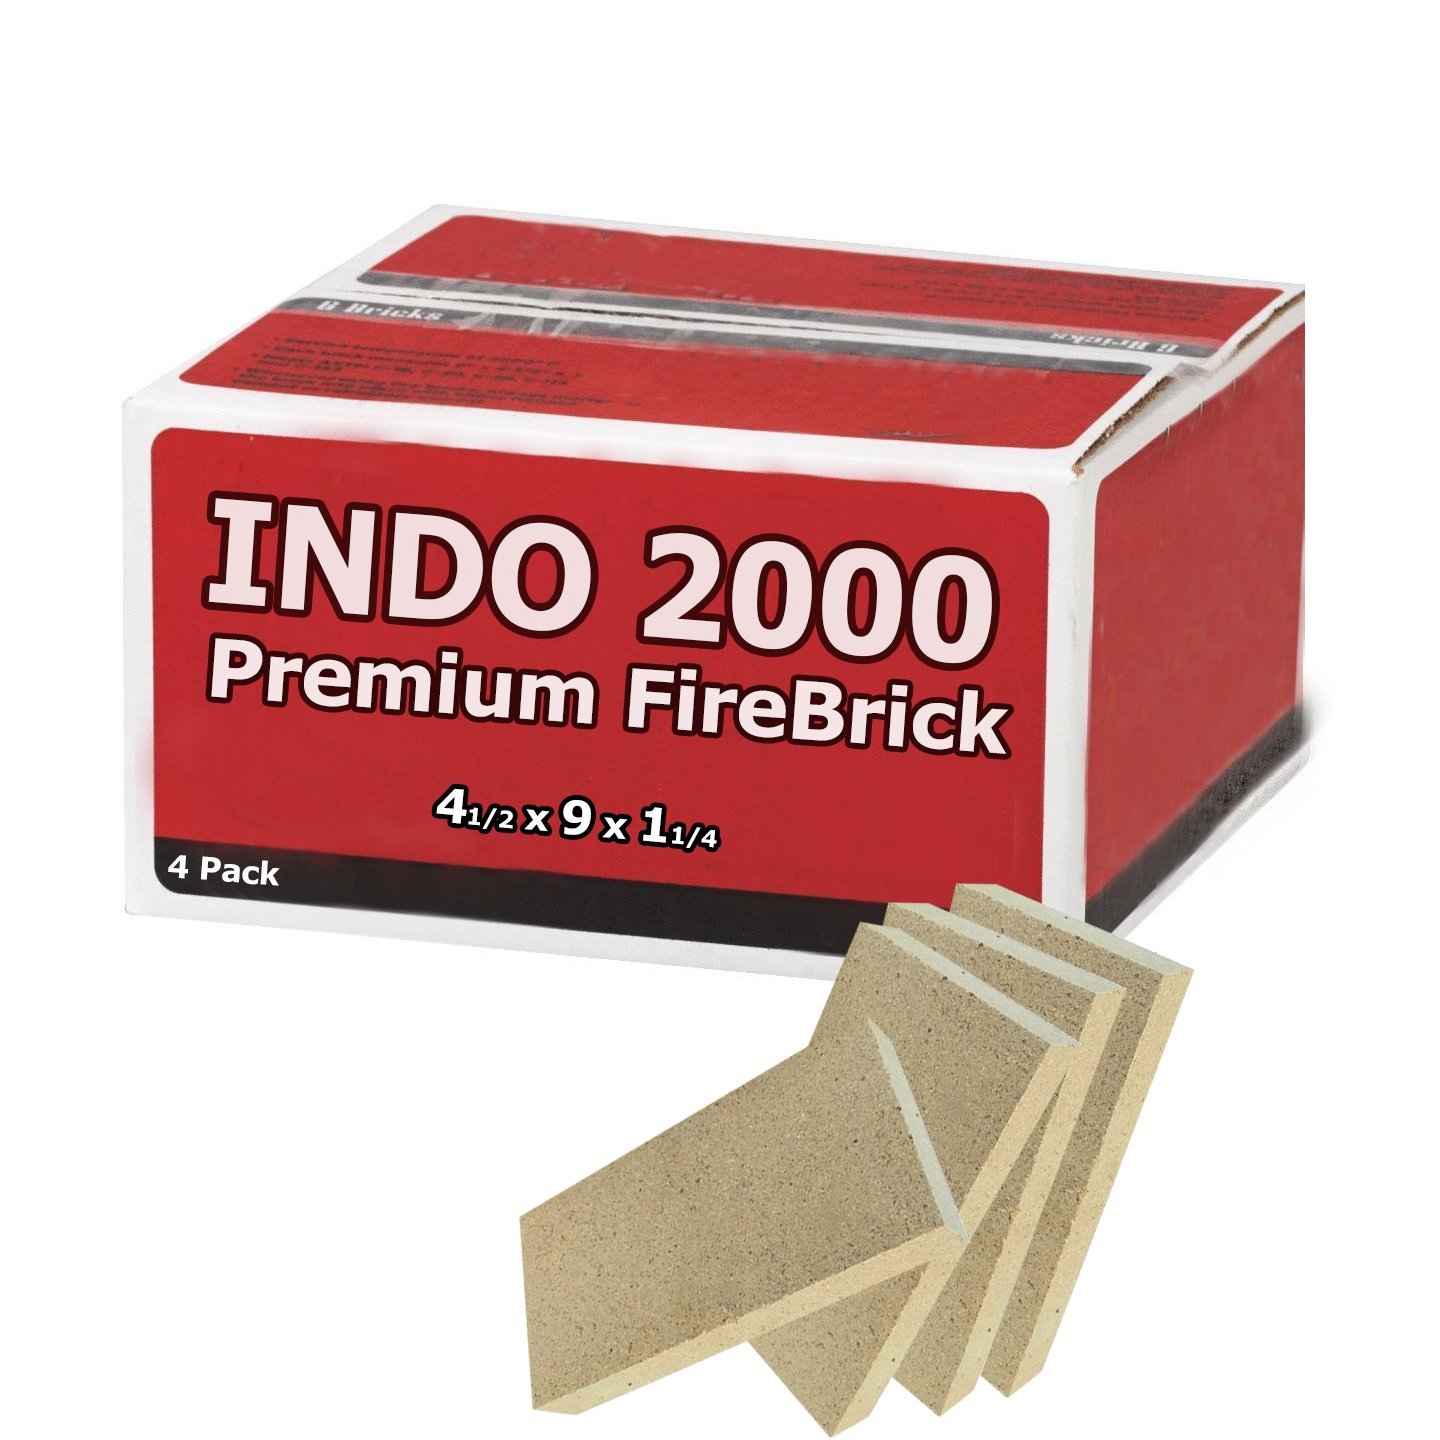 Fire Brick Kit of 4 perfect for fire pits, pizza ovens, and stoves